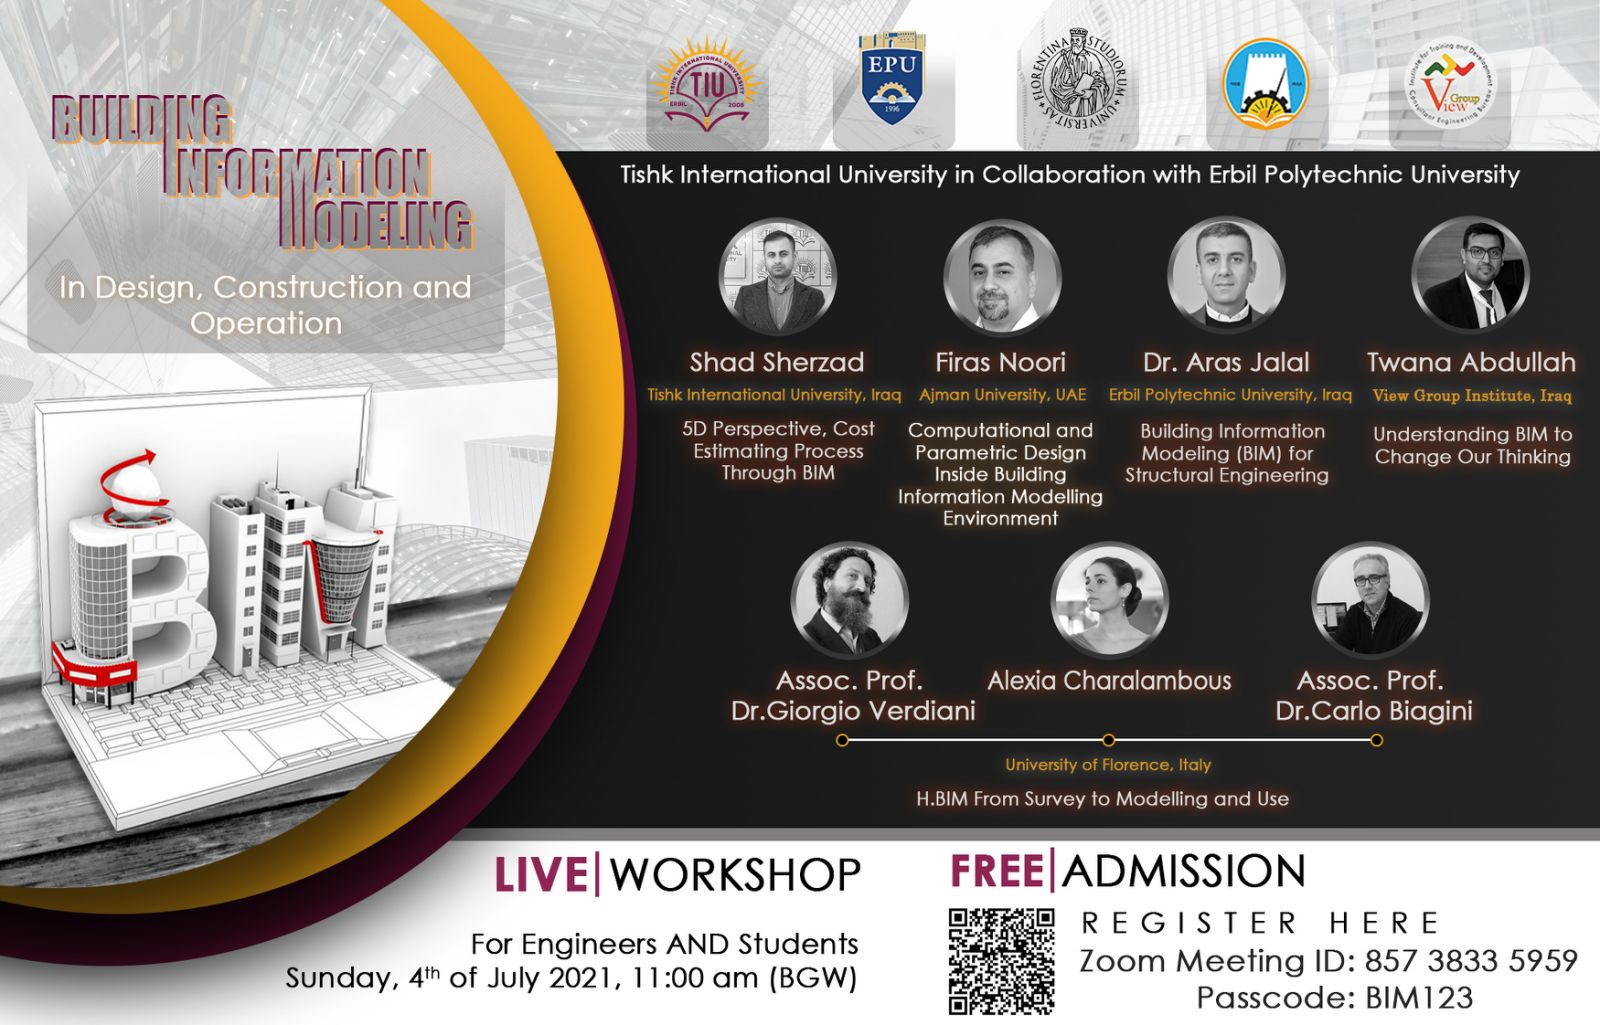 Erbil Polytechnic University In Collaboration With TISHK International University Will Deliver A Workshop